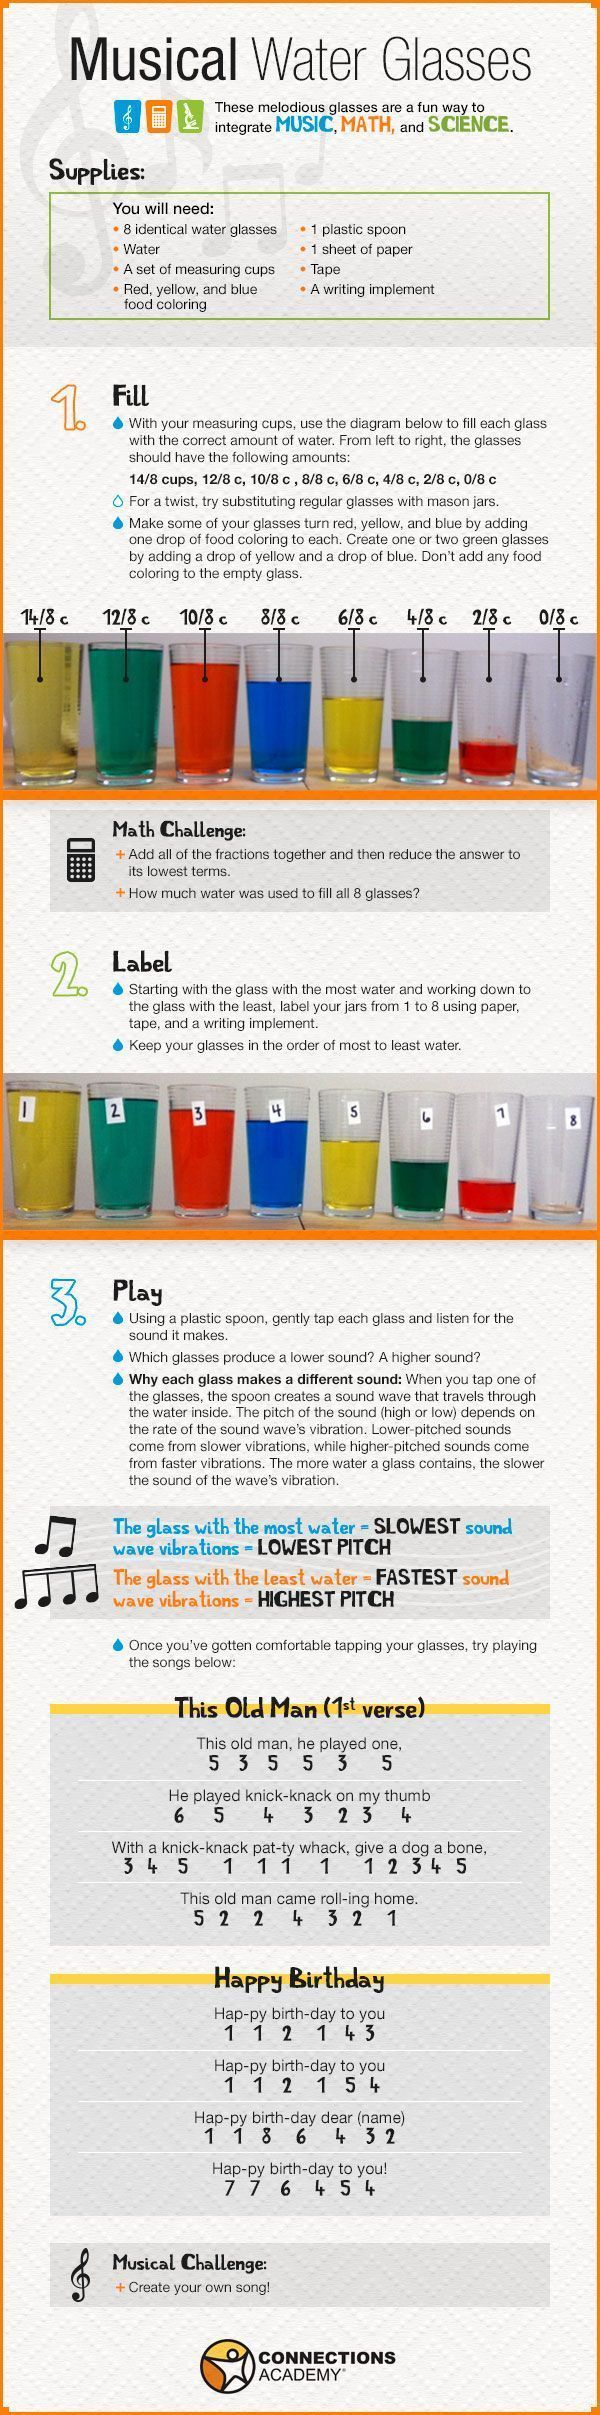 Experiment with Musical Water Glasses, and integrate music, math and science!